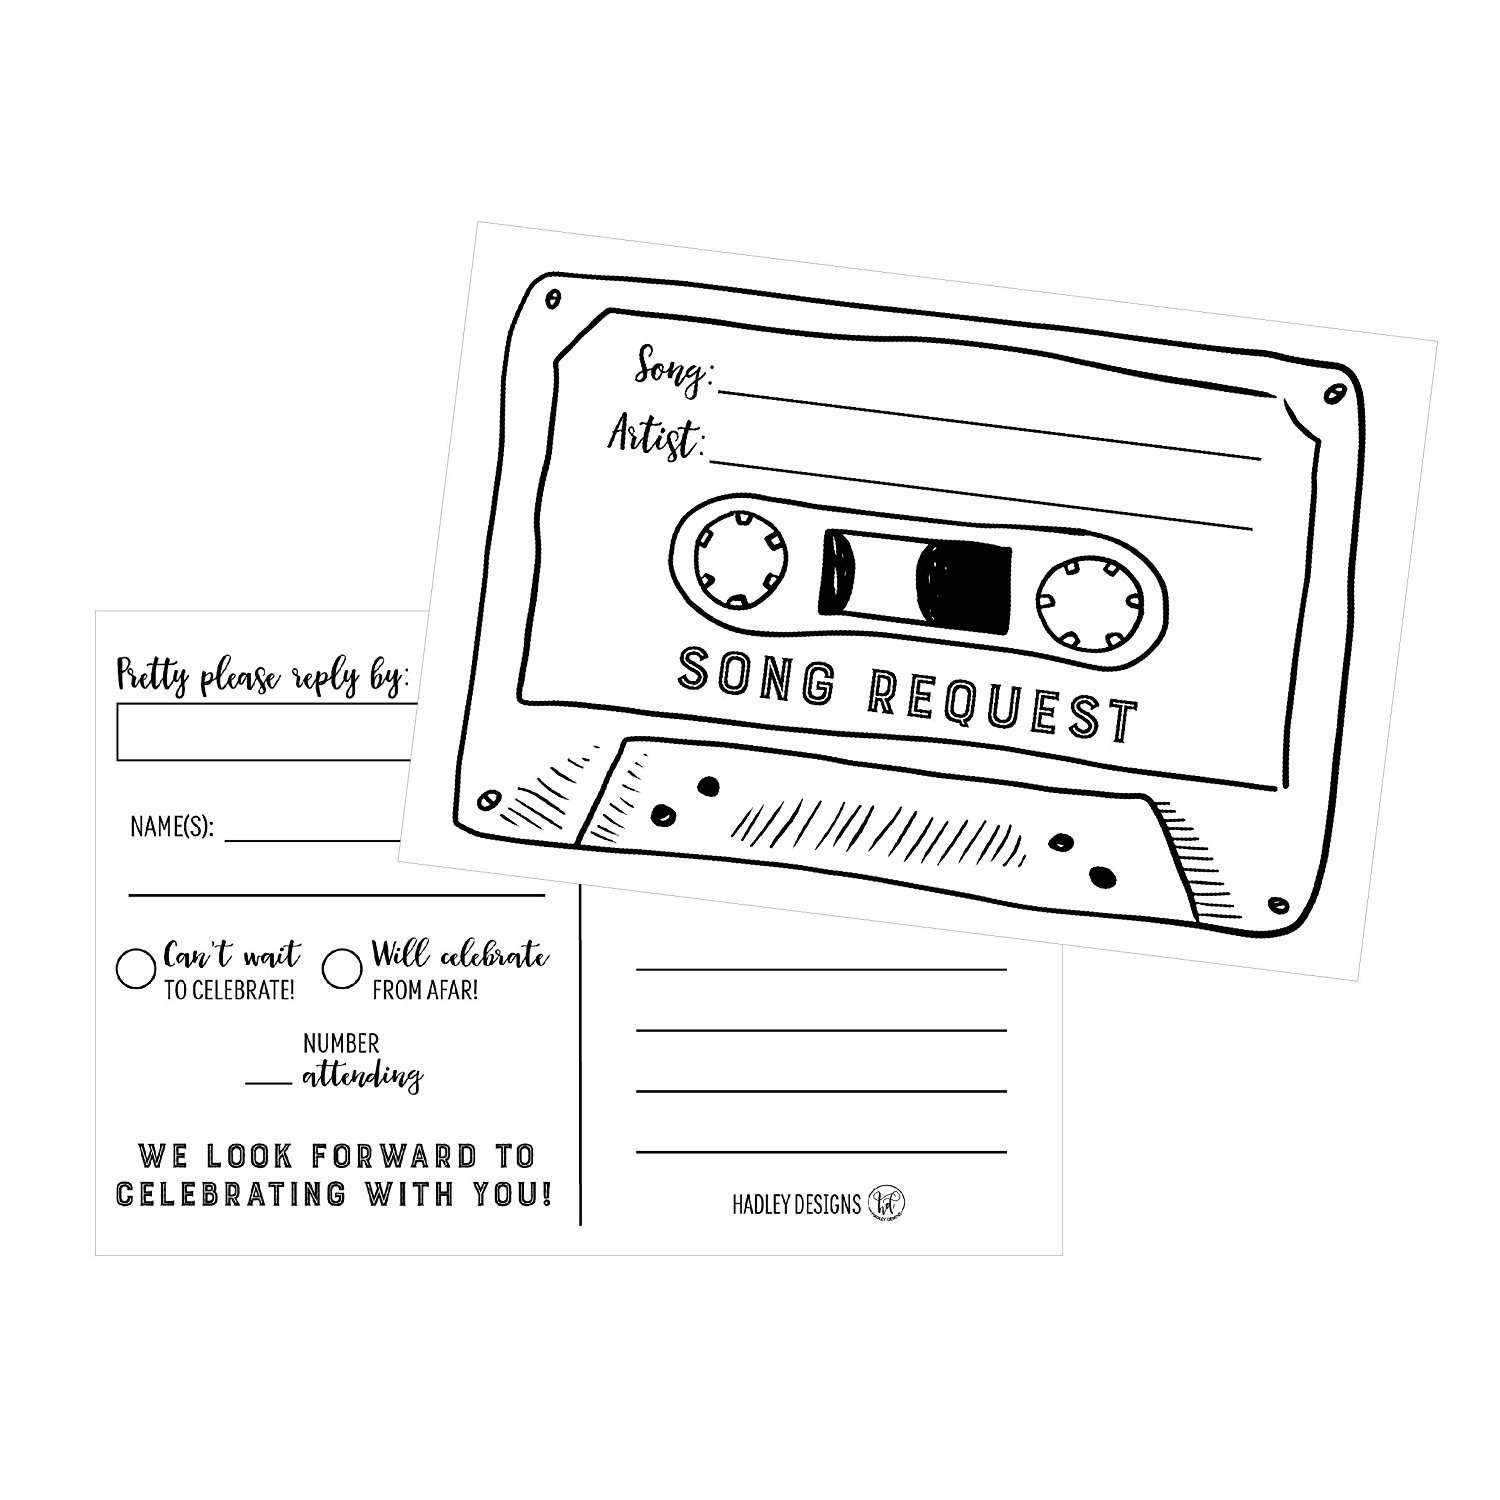 50 Song Request Cassette Tape Generic RSVP Cards, RSVP Postcards No Envelopes Needed, Response Card, RSVP Reply, Plain RSVP kit for Wedding, Baby Bridal Shower, Birthday, Invitations